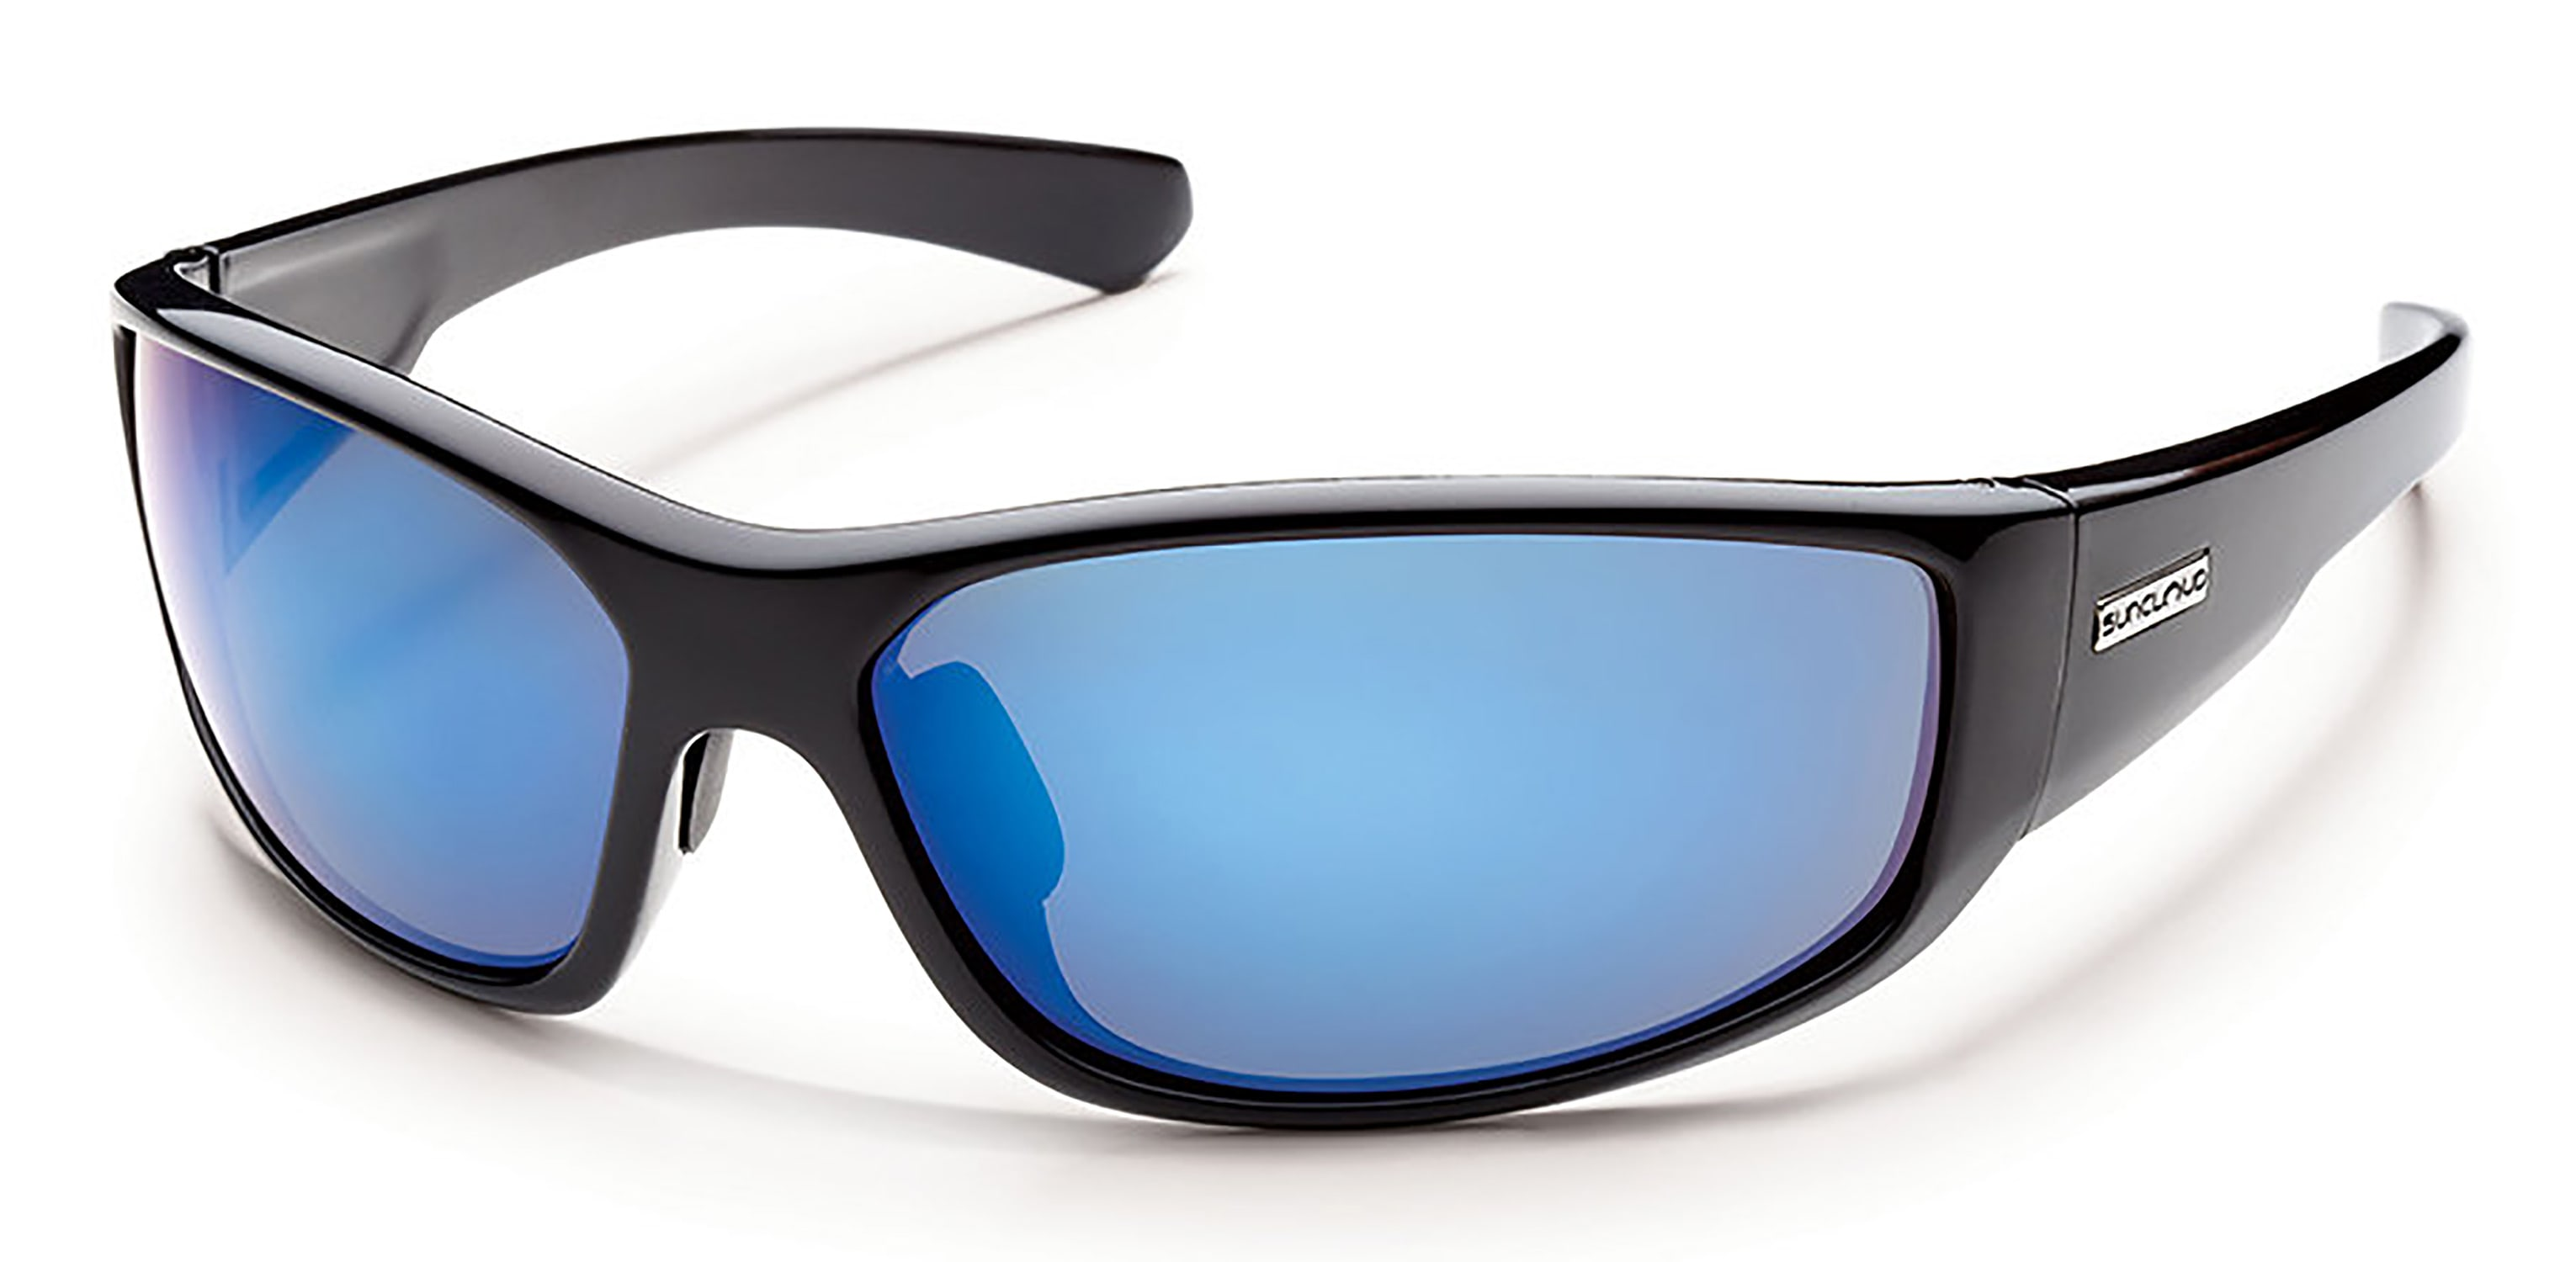 Sunglasses Blue Polarized Lenses Www Tapdance Org